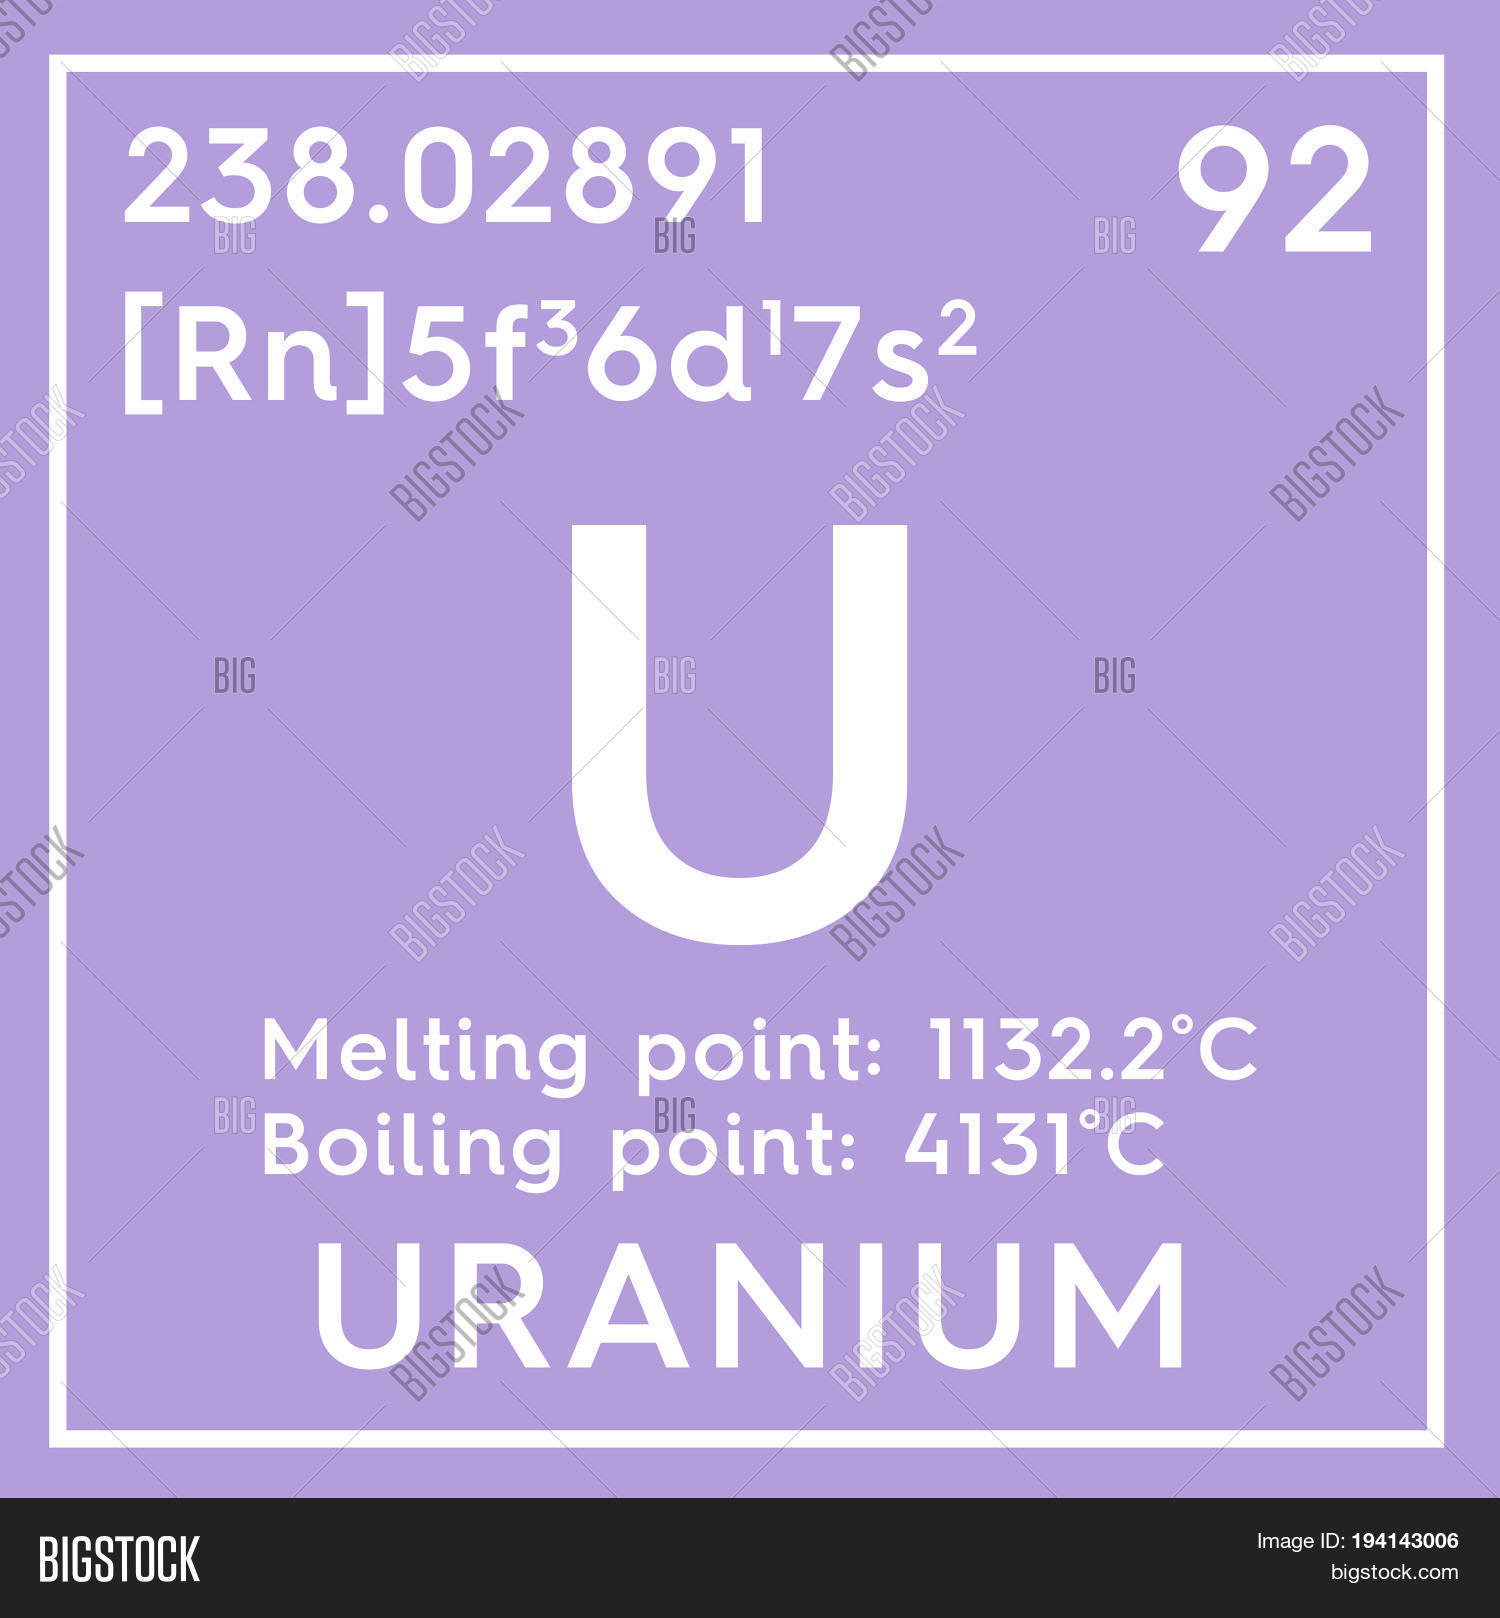 Uranium actinoids chemical element of mendeleevs periodic table uranium actinoids chemical element of mendeleevs periodic table uranium in square cube creative gamestrikefo Image collections